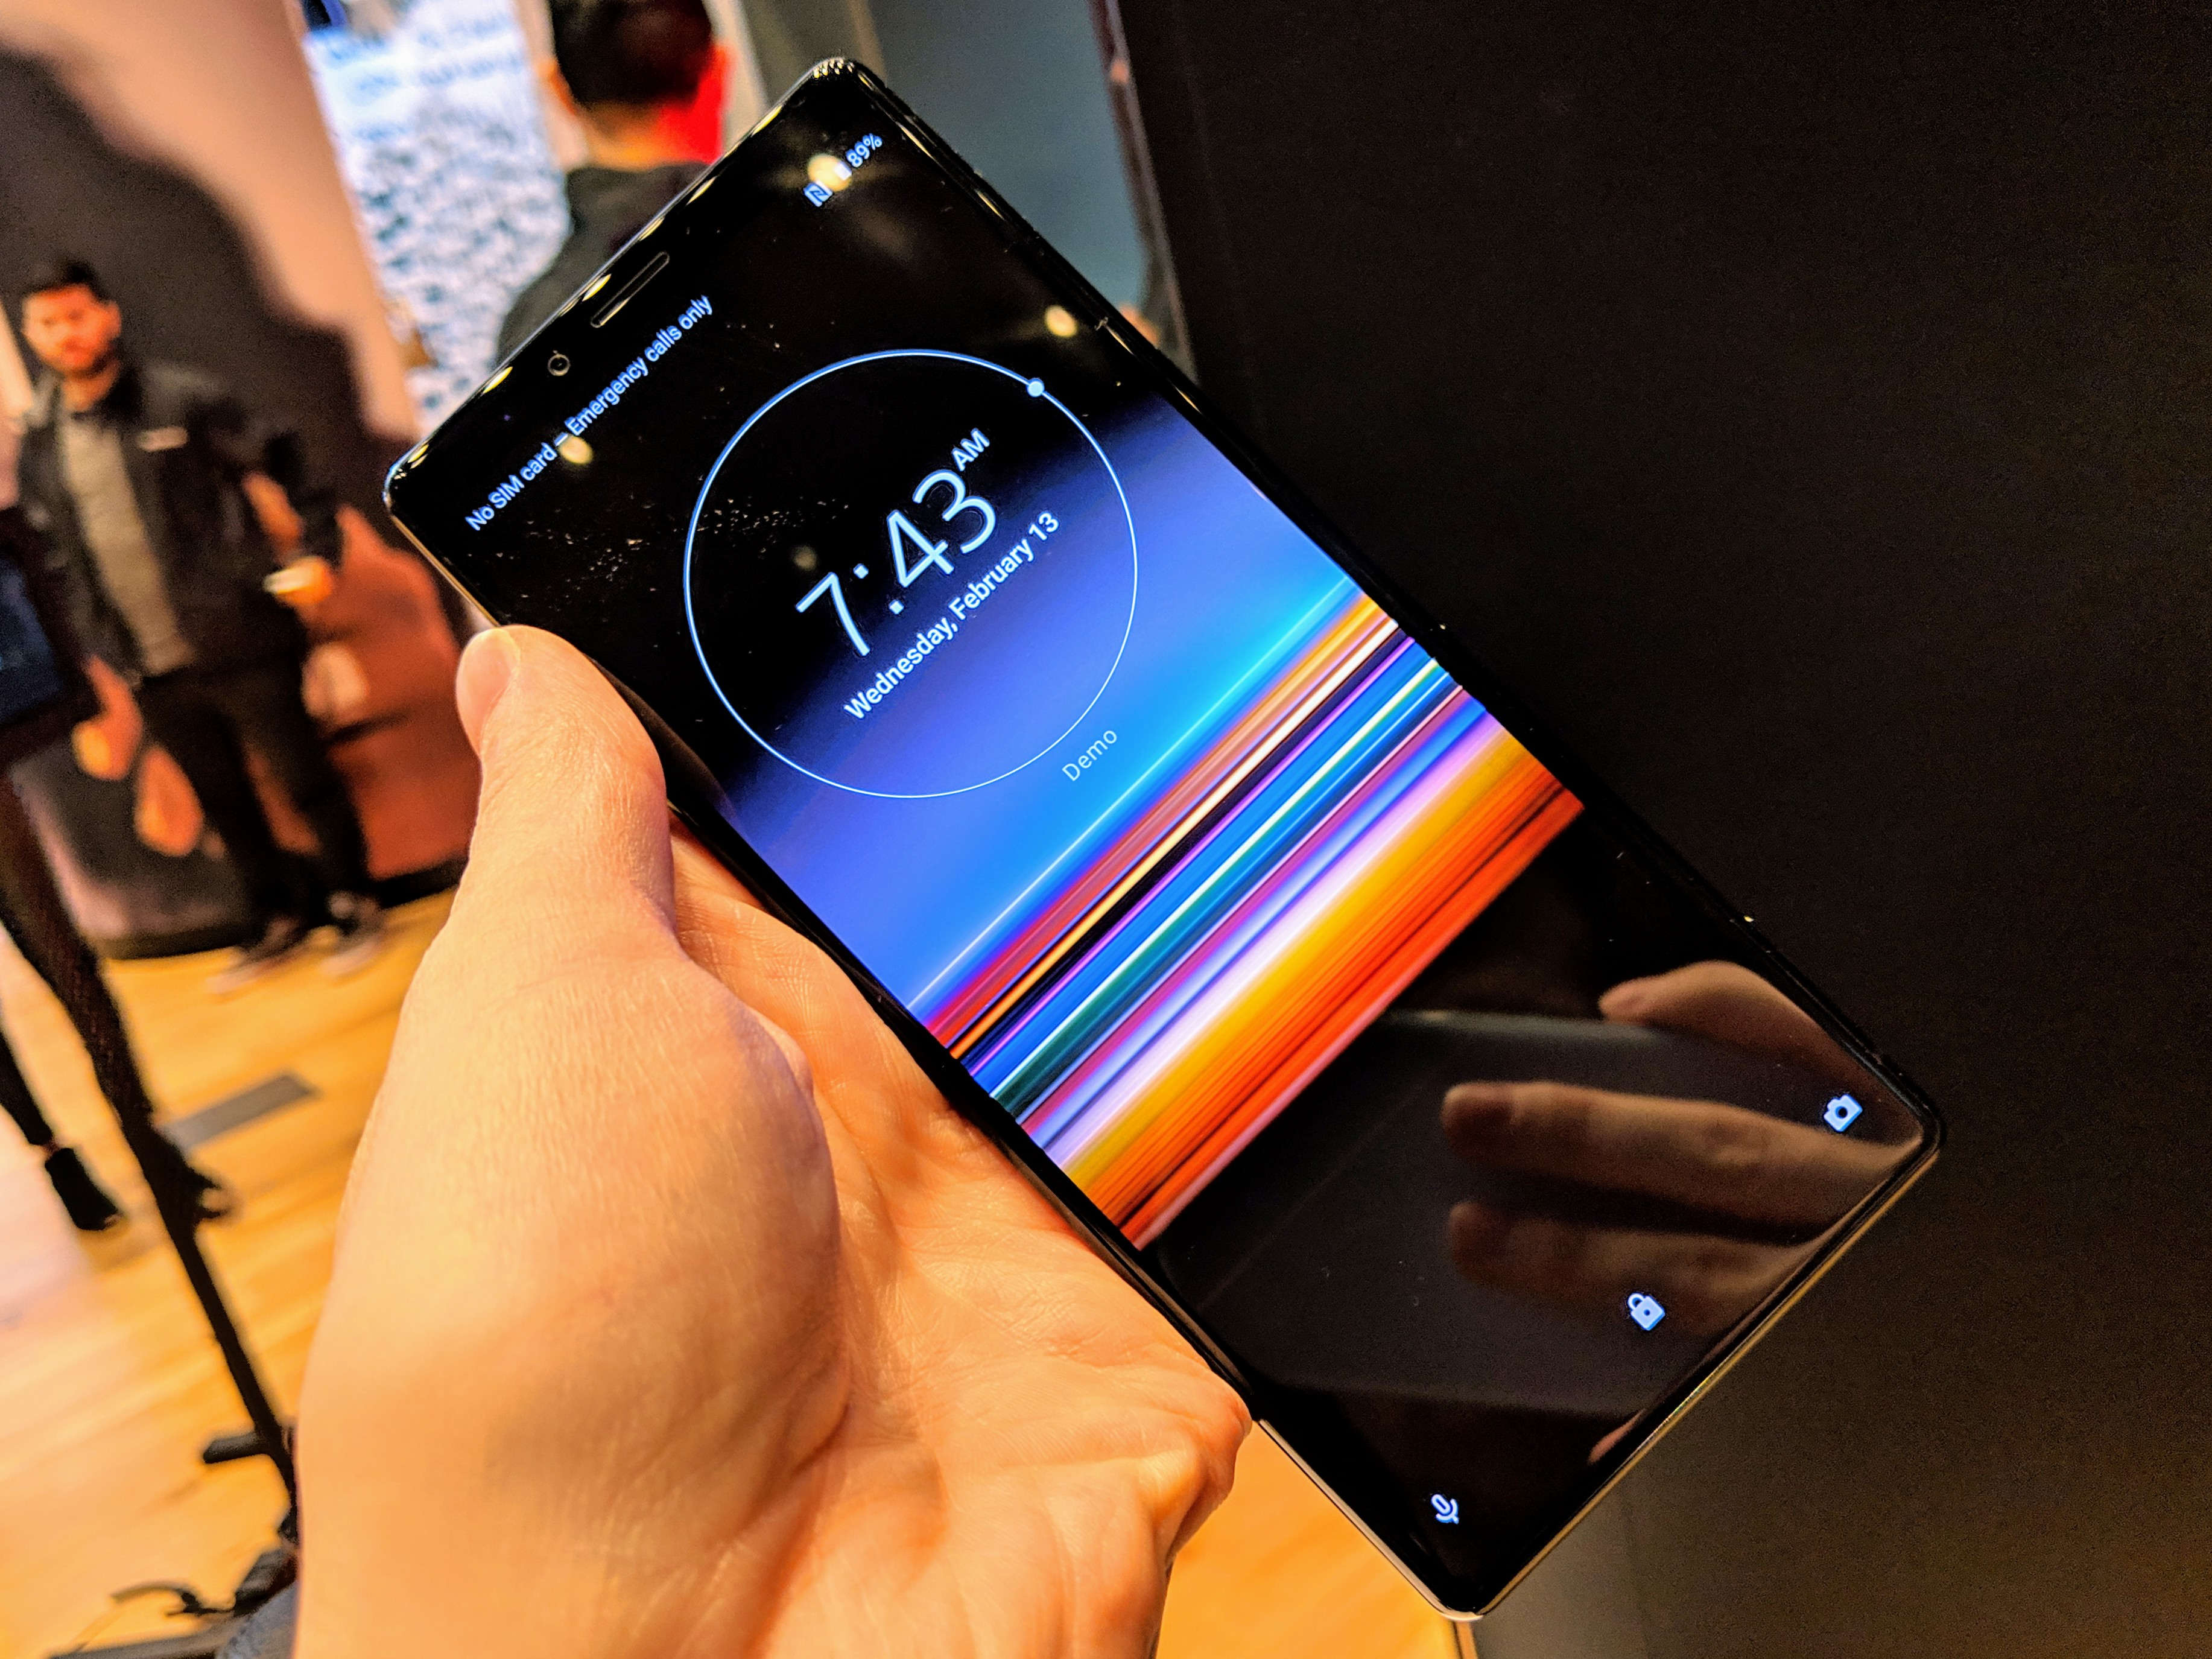 Sony's Xperia 1, Xperia 10, and Xperia 10 Plus have